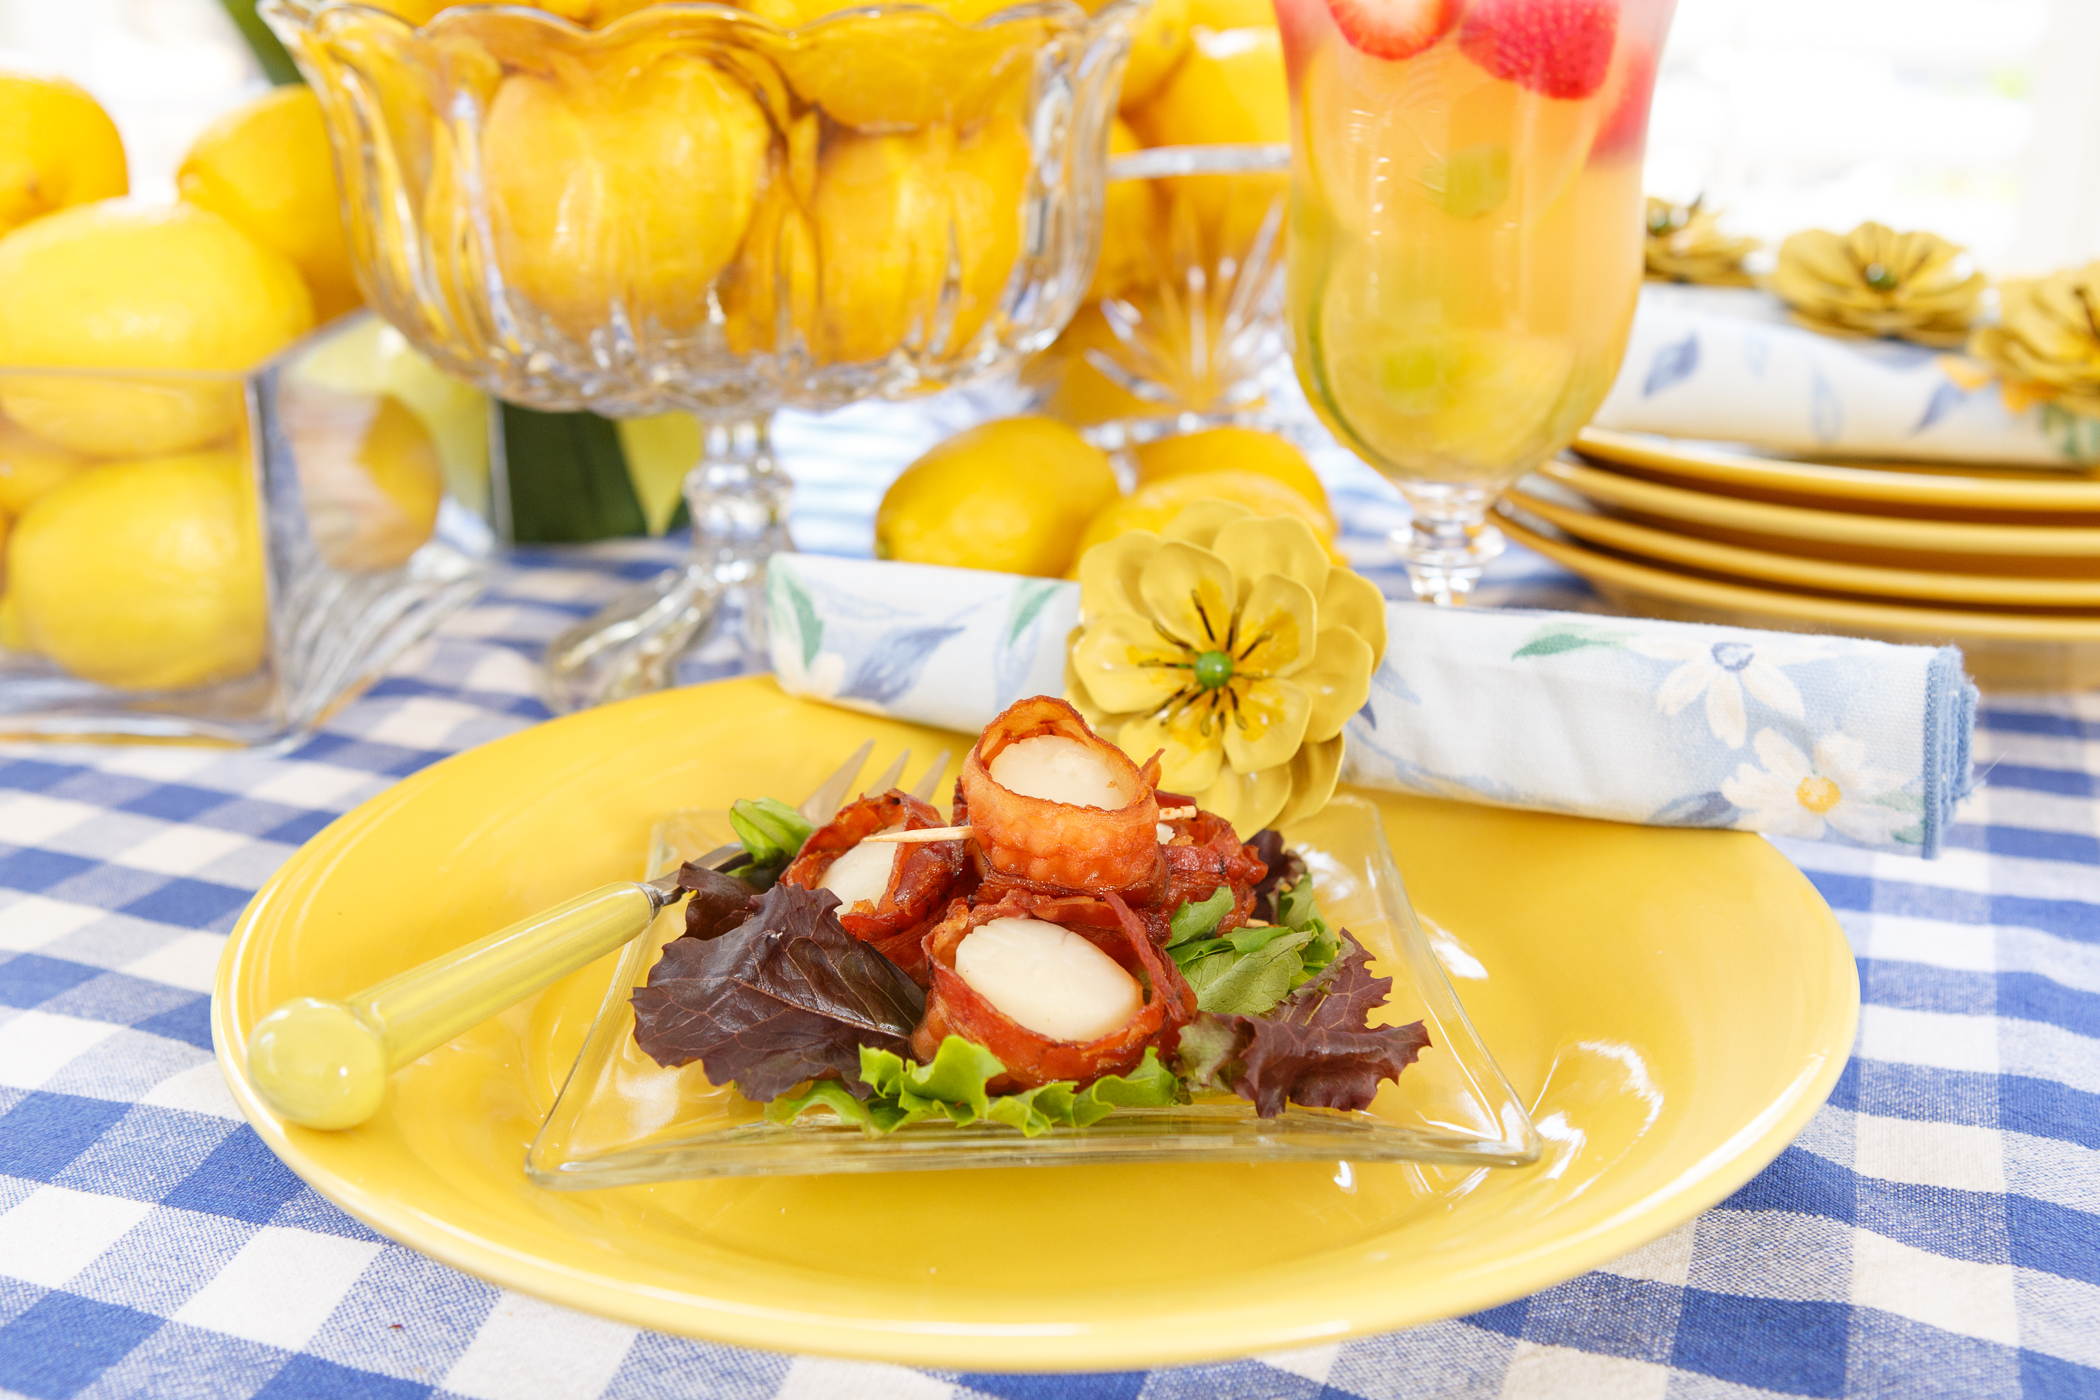 Mesclun Salad with Bacon-Wrapped Scallops and Champagne Vinaigrette